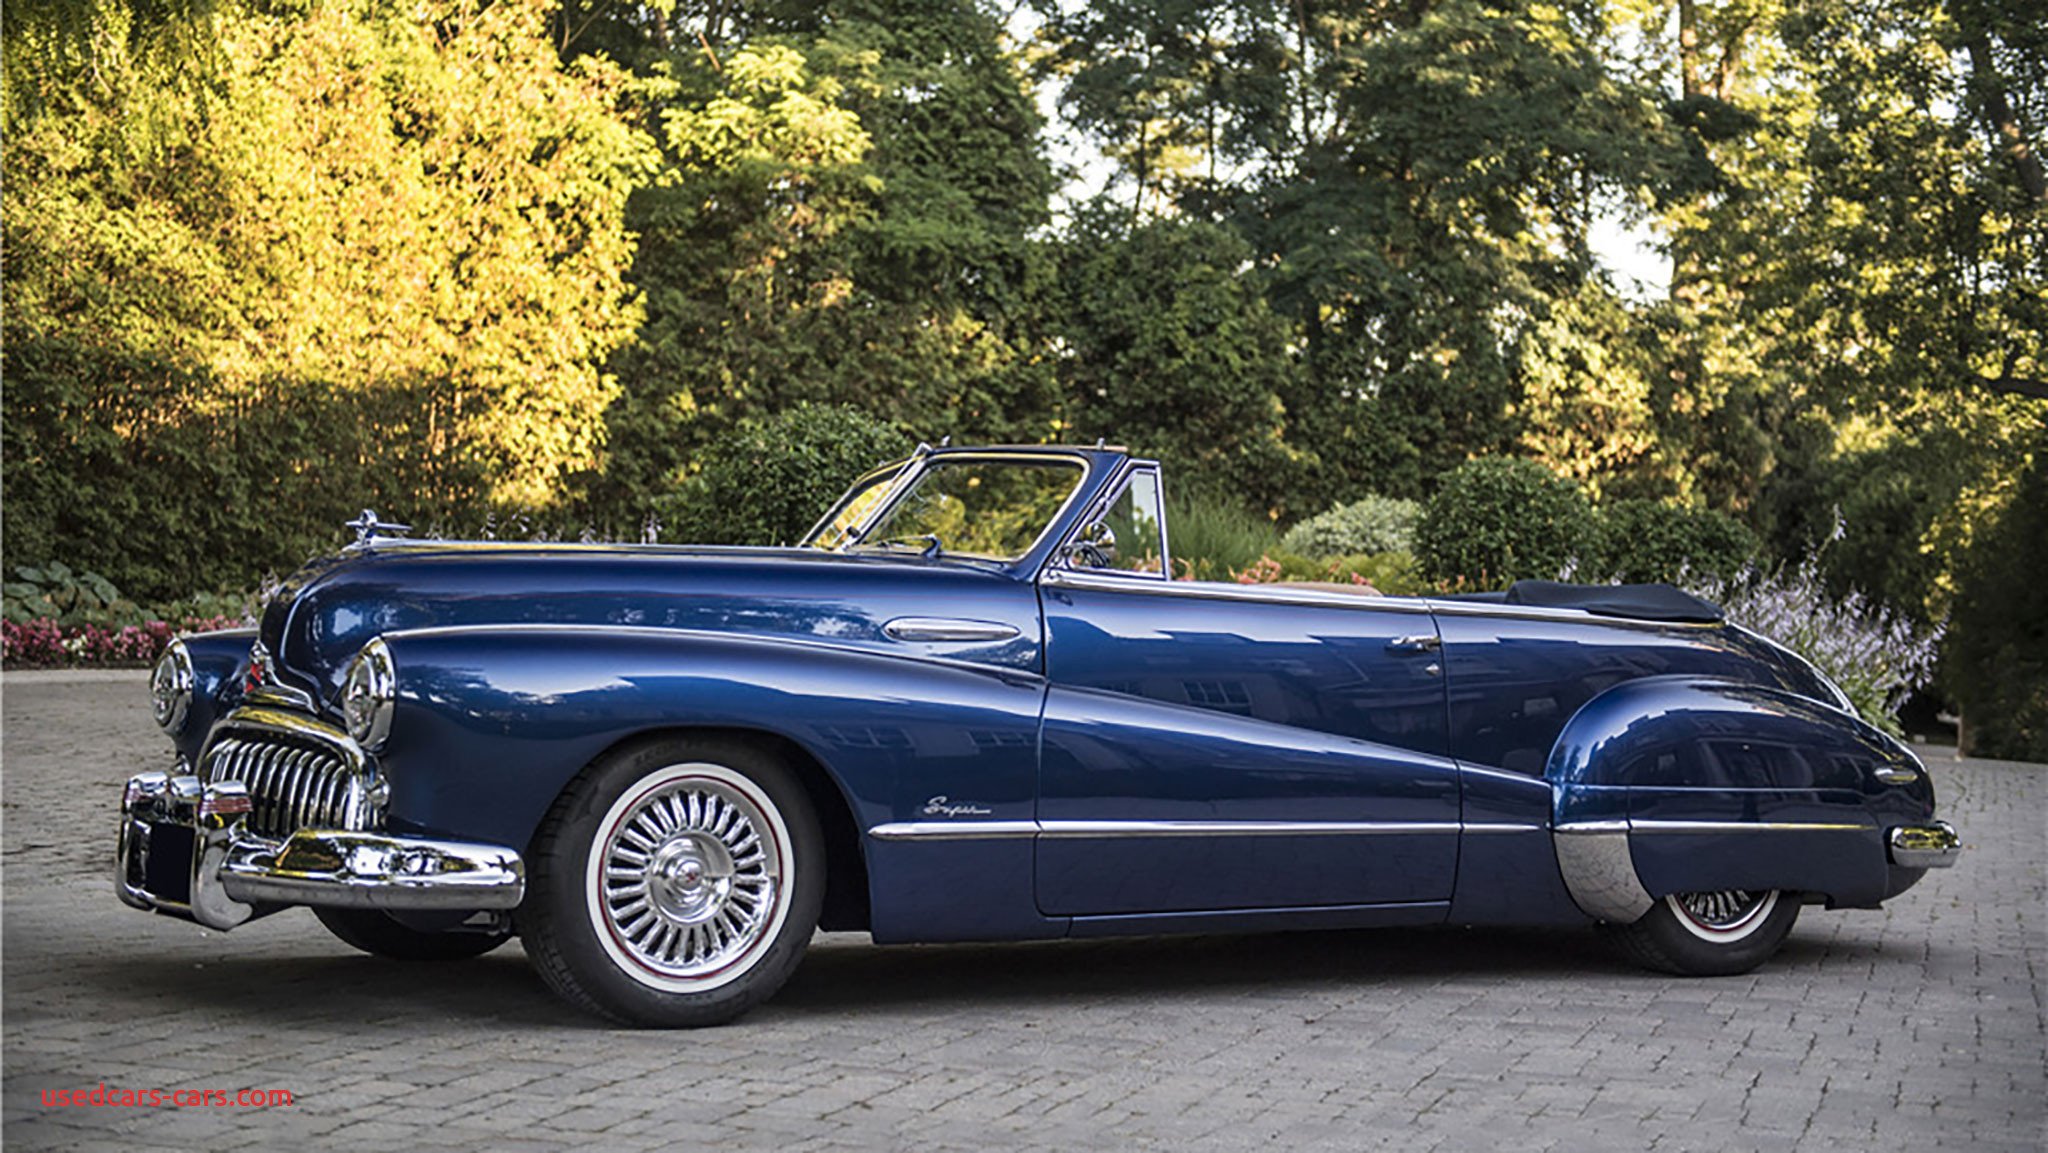 Fantomworks Inventory for Sale Elegant the Most Expensive Car sold at Barrett Jackson Palm Beach